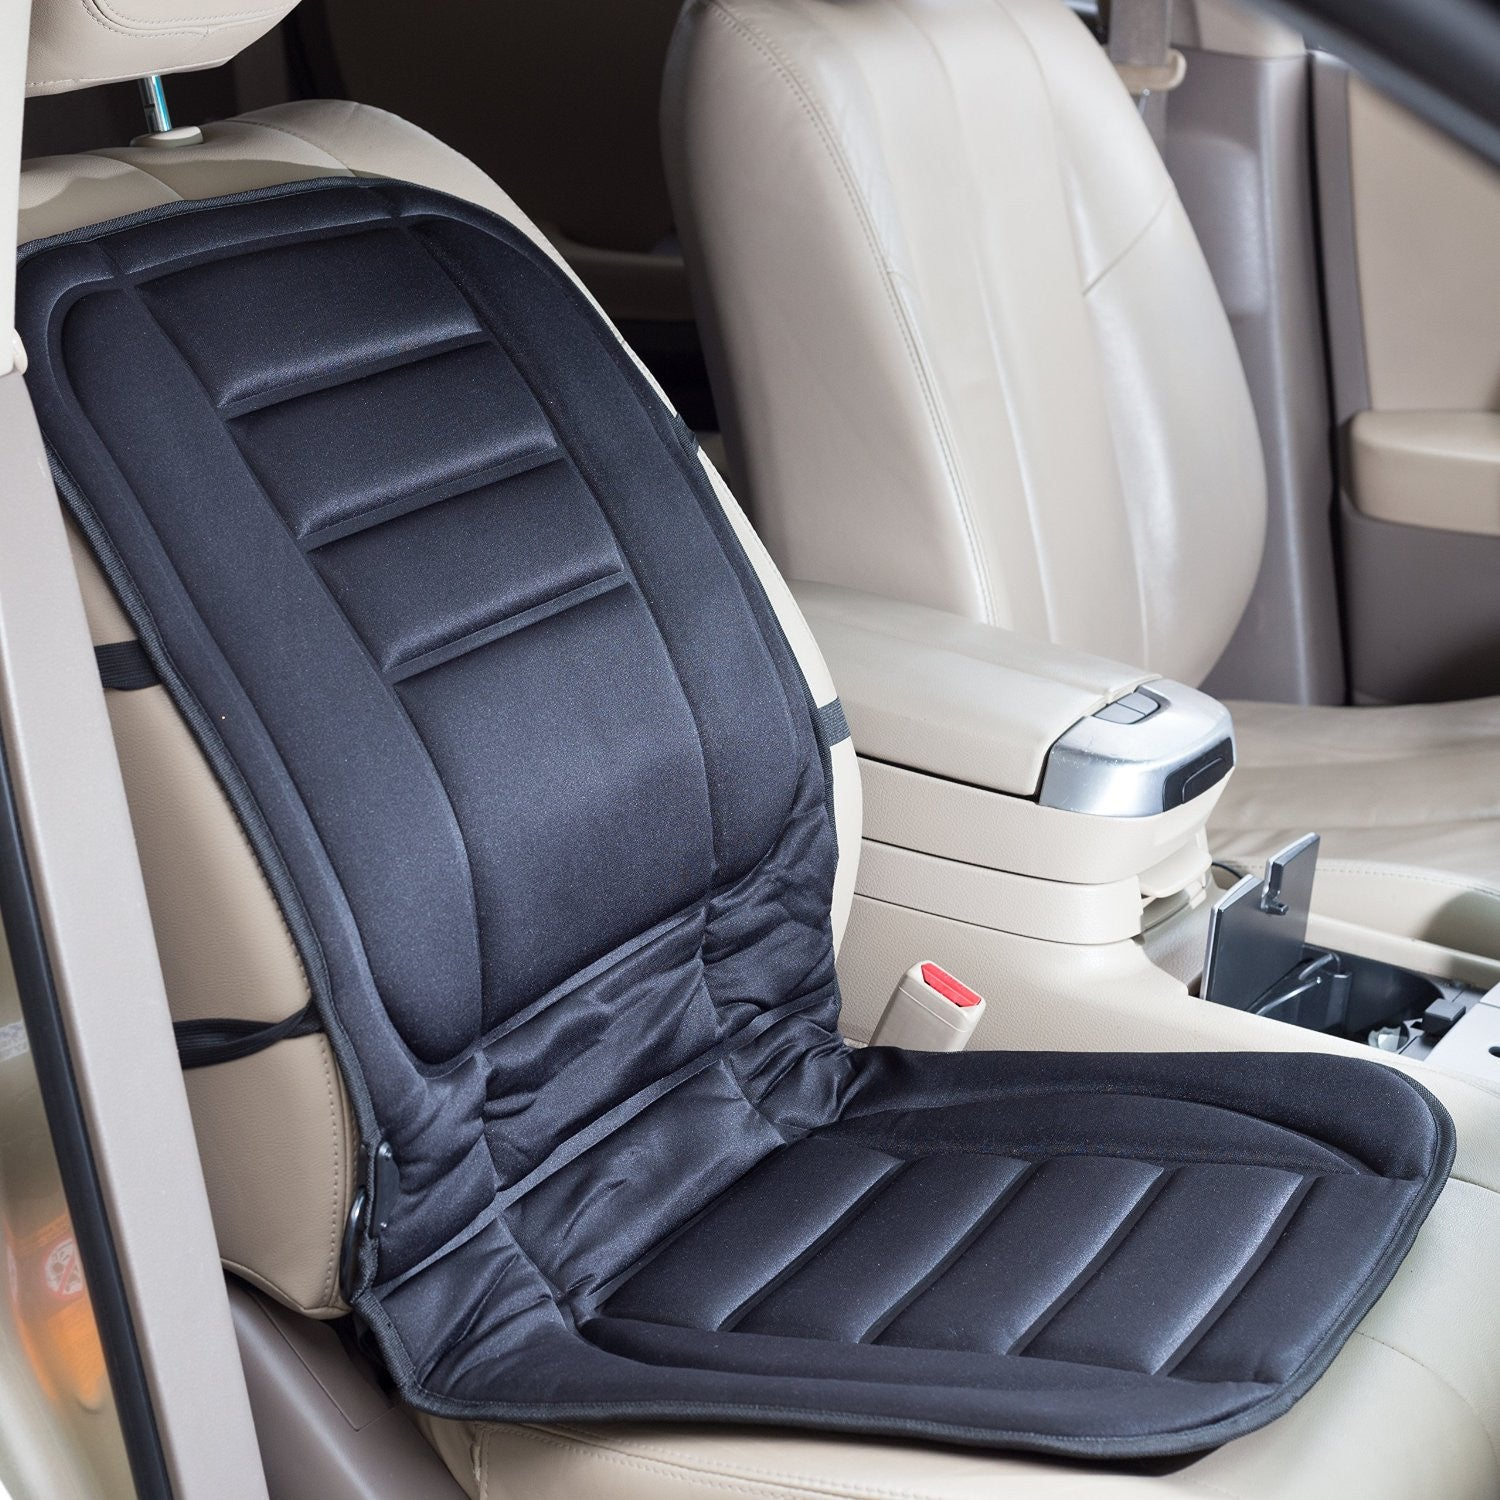 Universal Heated Car Seat Cushion 12 Volt 3 Way Temperature Control